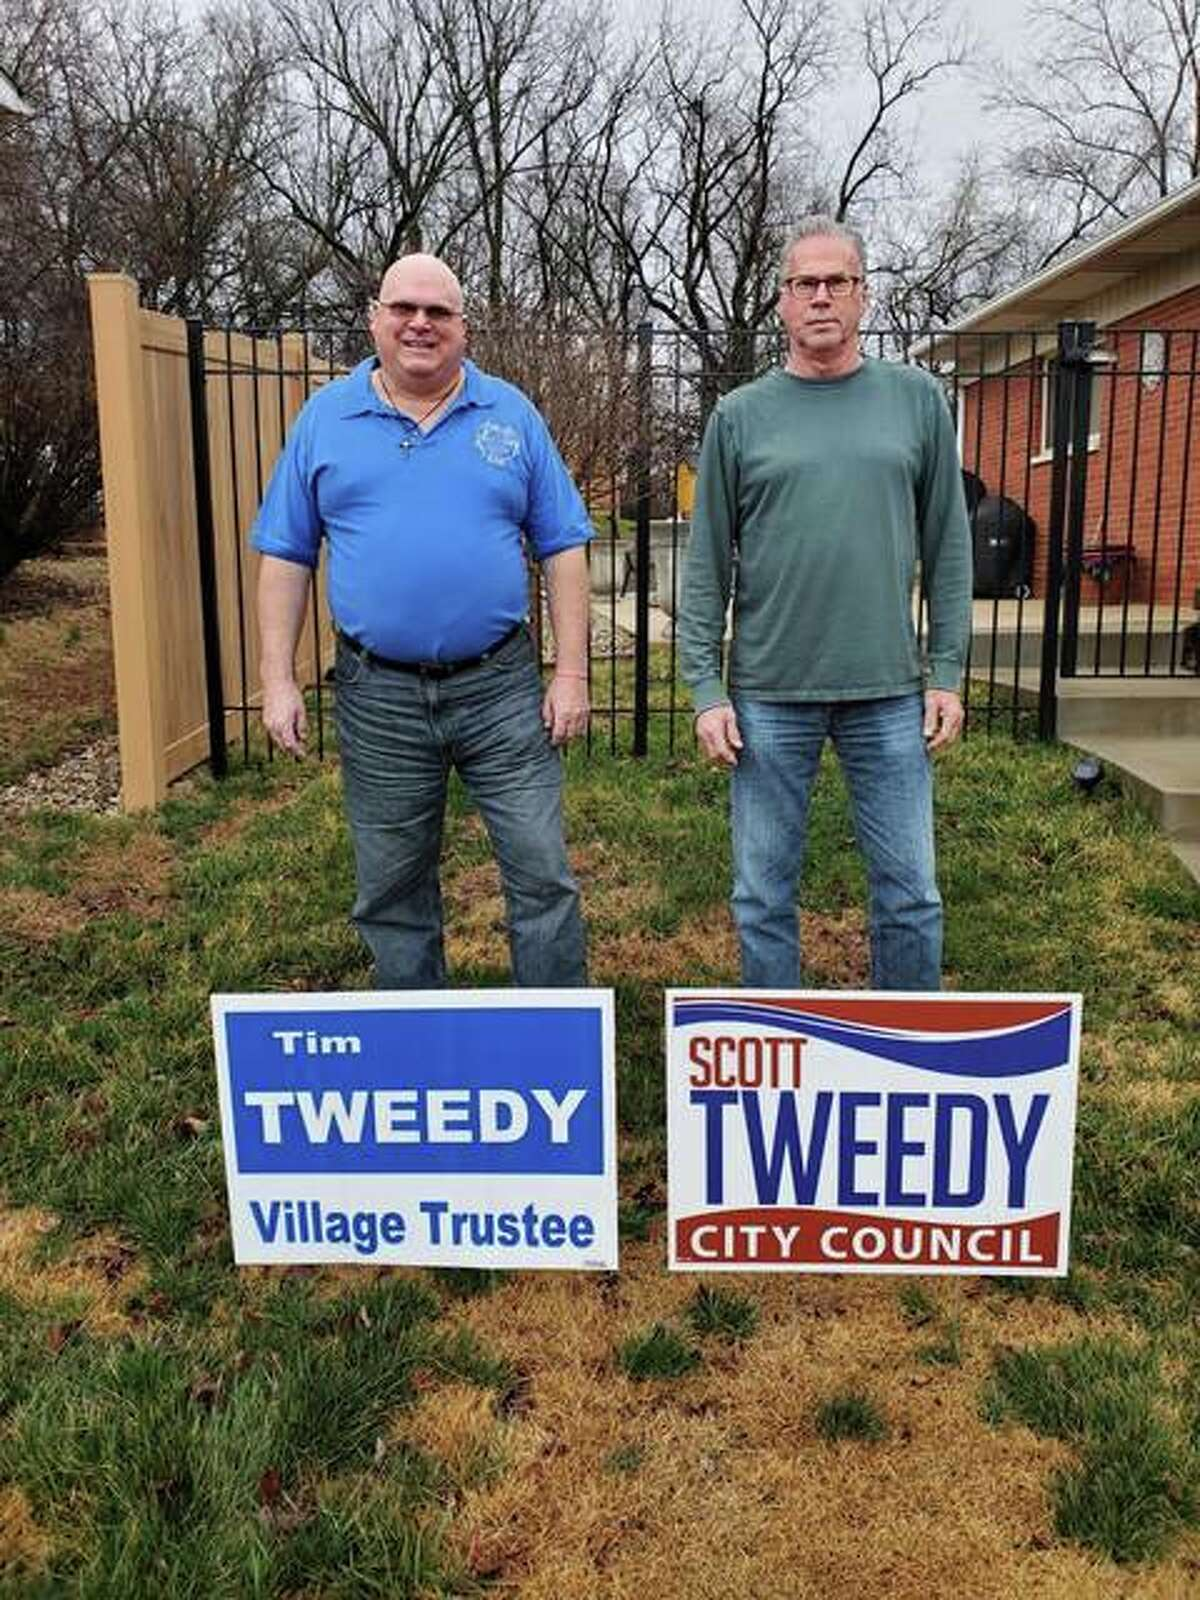 Brothers Tim Tweedy, left, and Scott Tweedy, right are both on the April 6 ballot - in separate races. Tim Tweedy is running for a seat on the Bethalto Village Board of Trustees. Scott Tweedy is seeking a seat on the Wood River City Council.